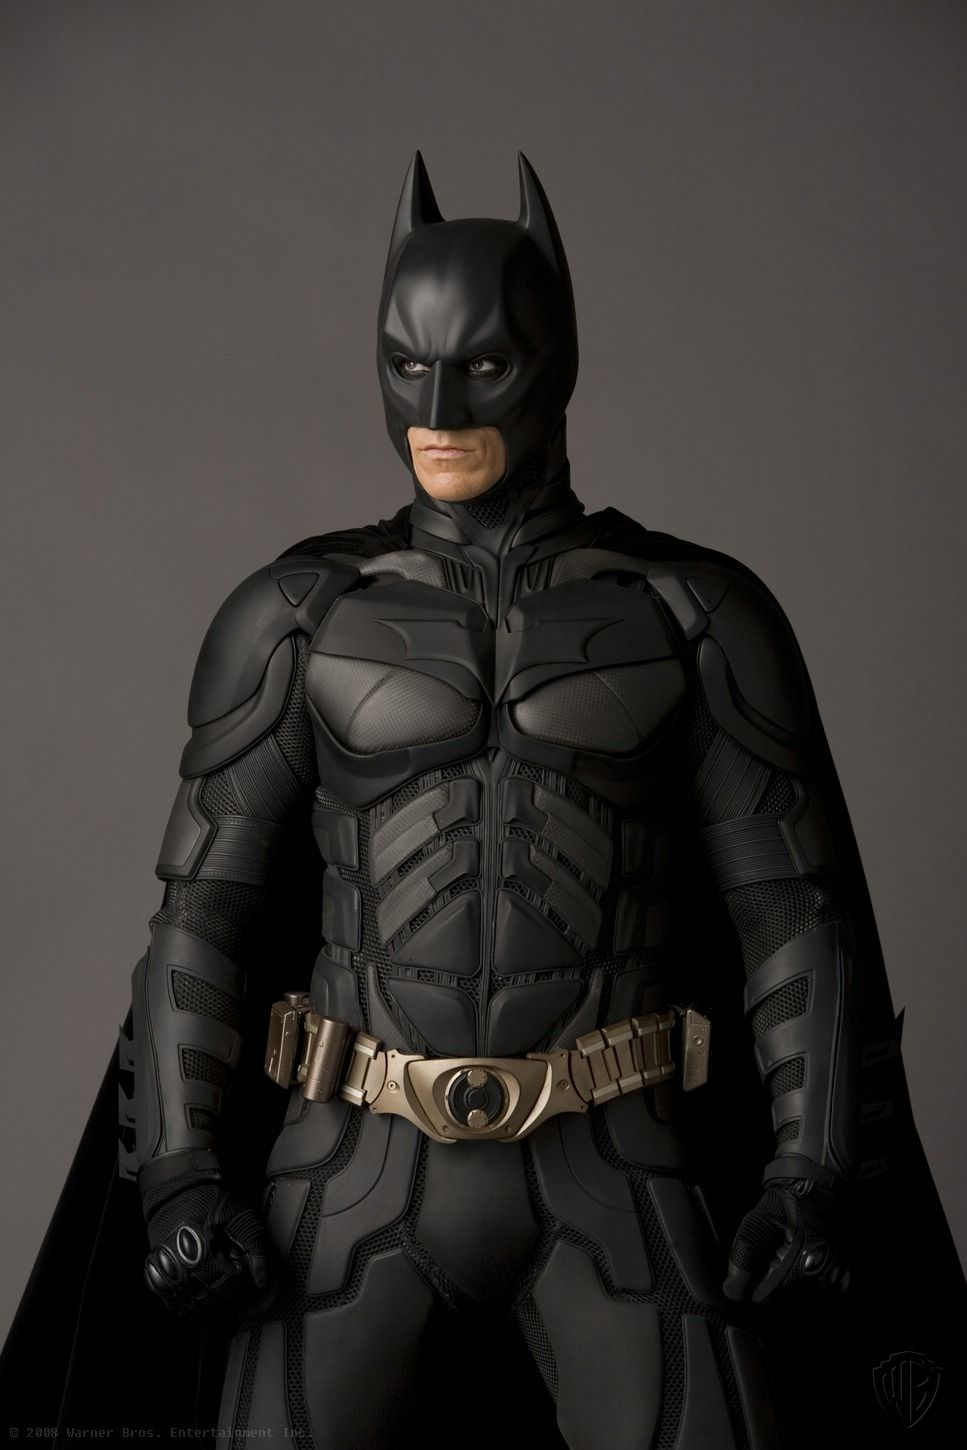 The Dark Knight suit | kesseljunkie